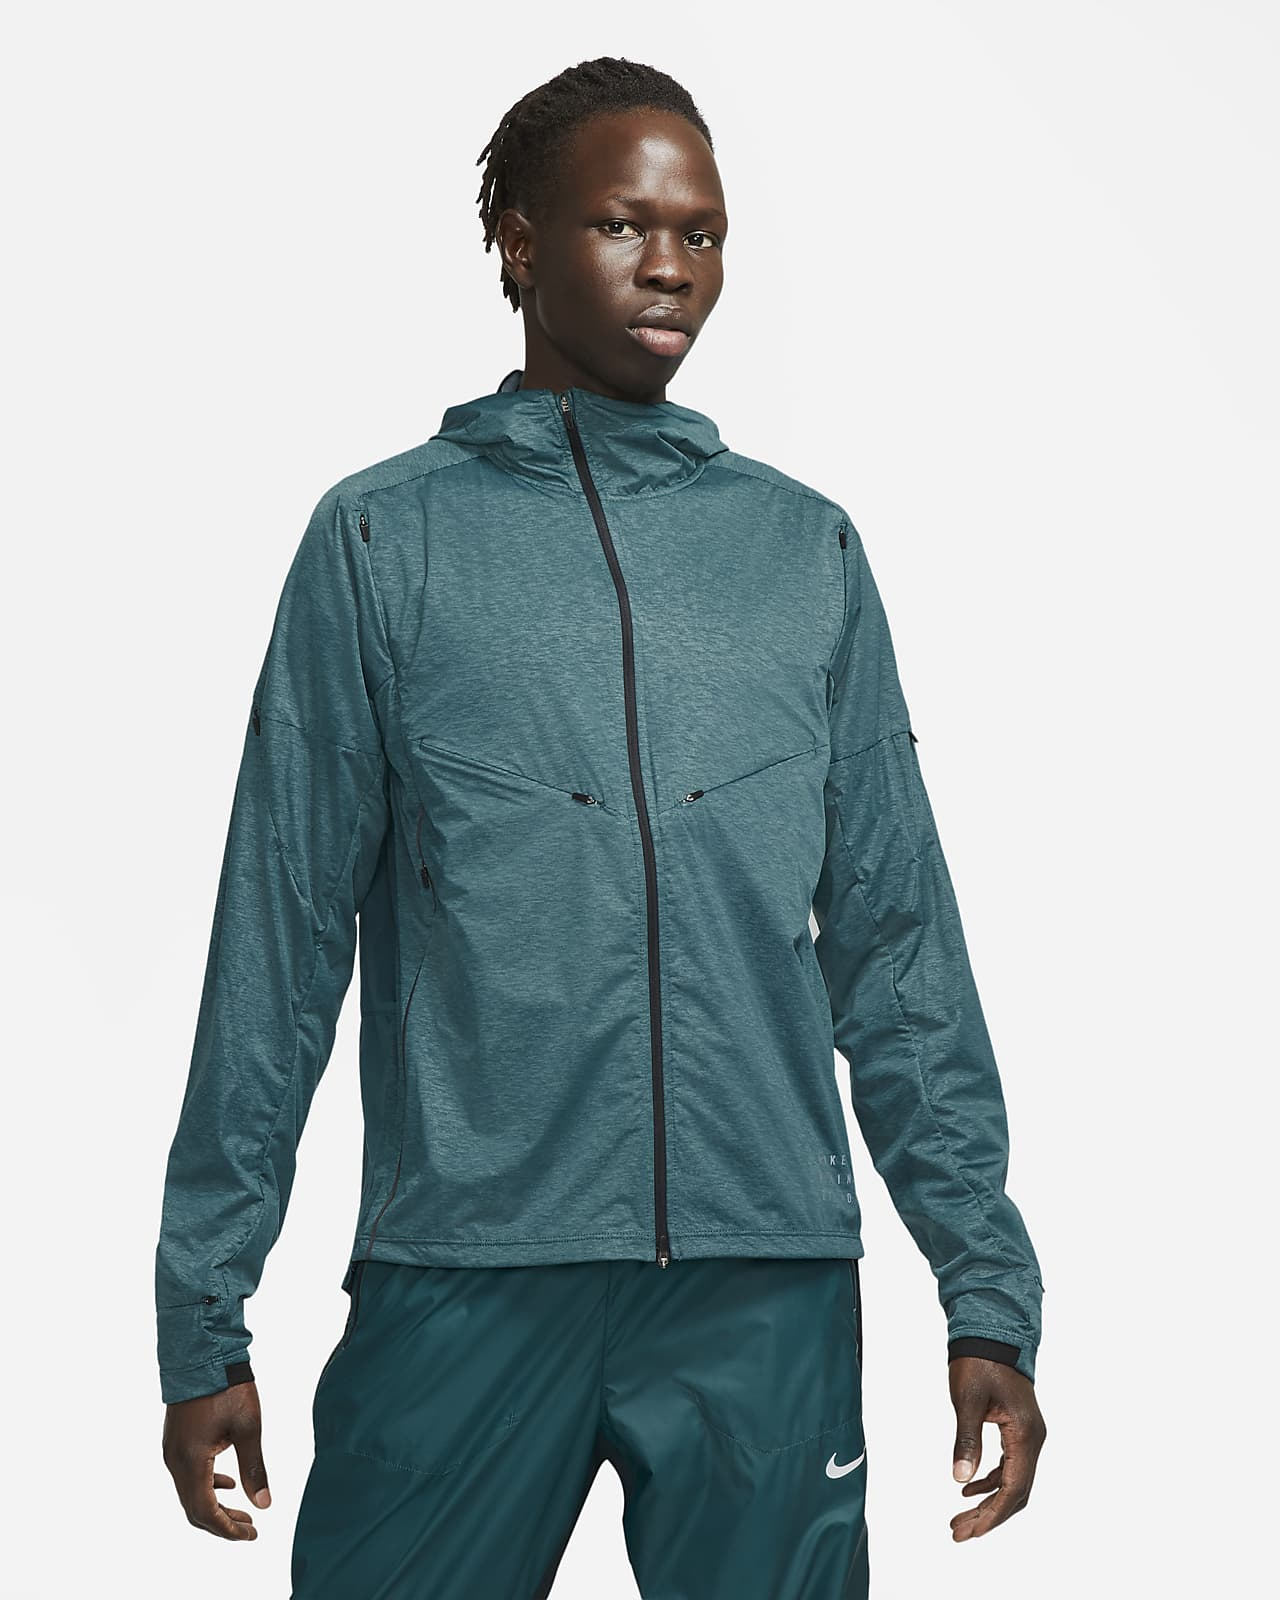 Nike Pinnacle Run Division Men's Printed Running Jacket